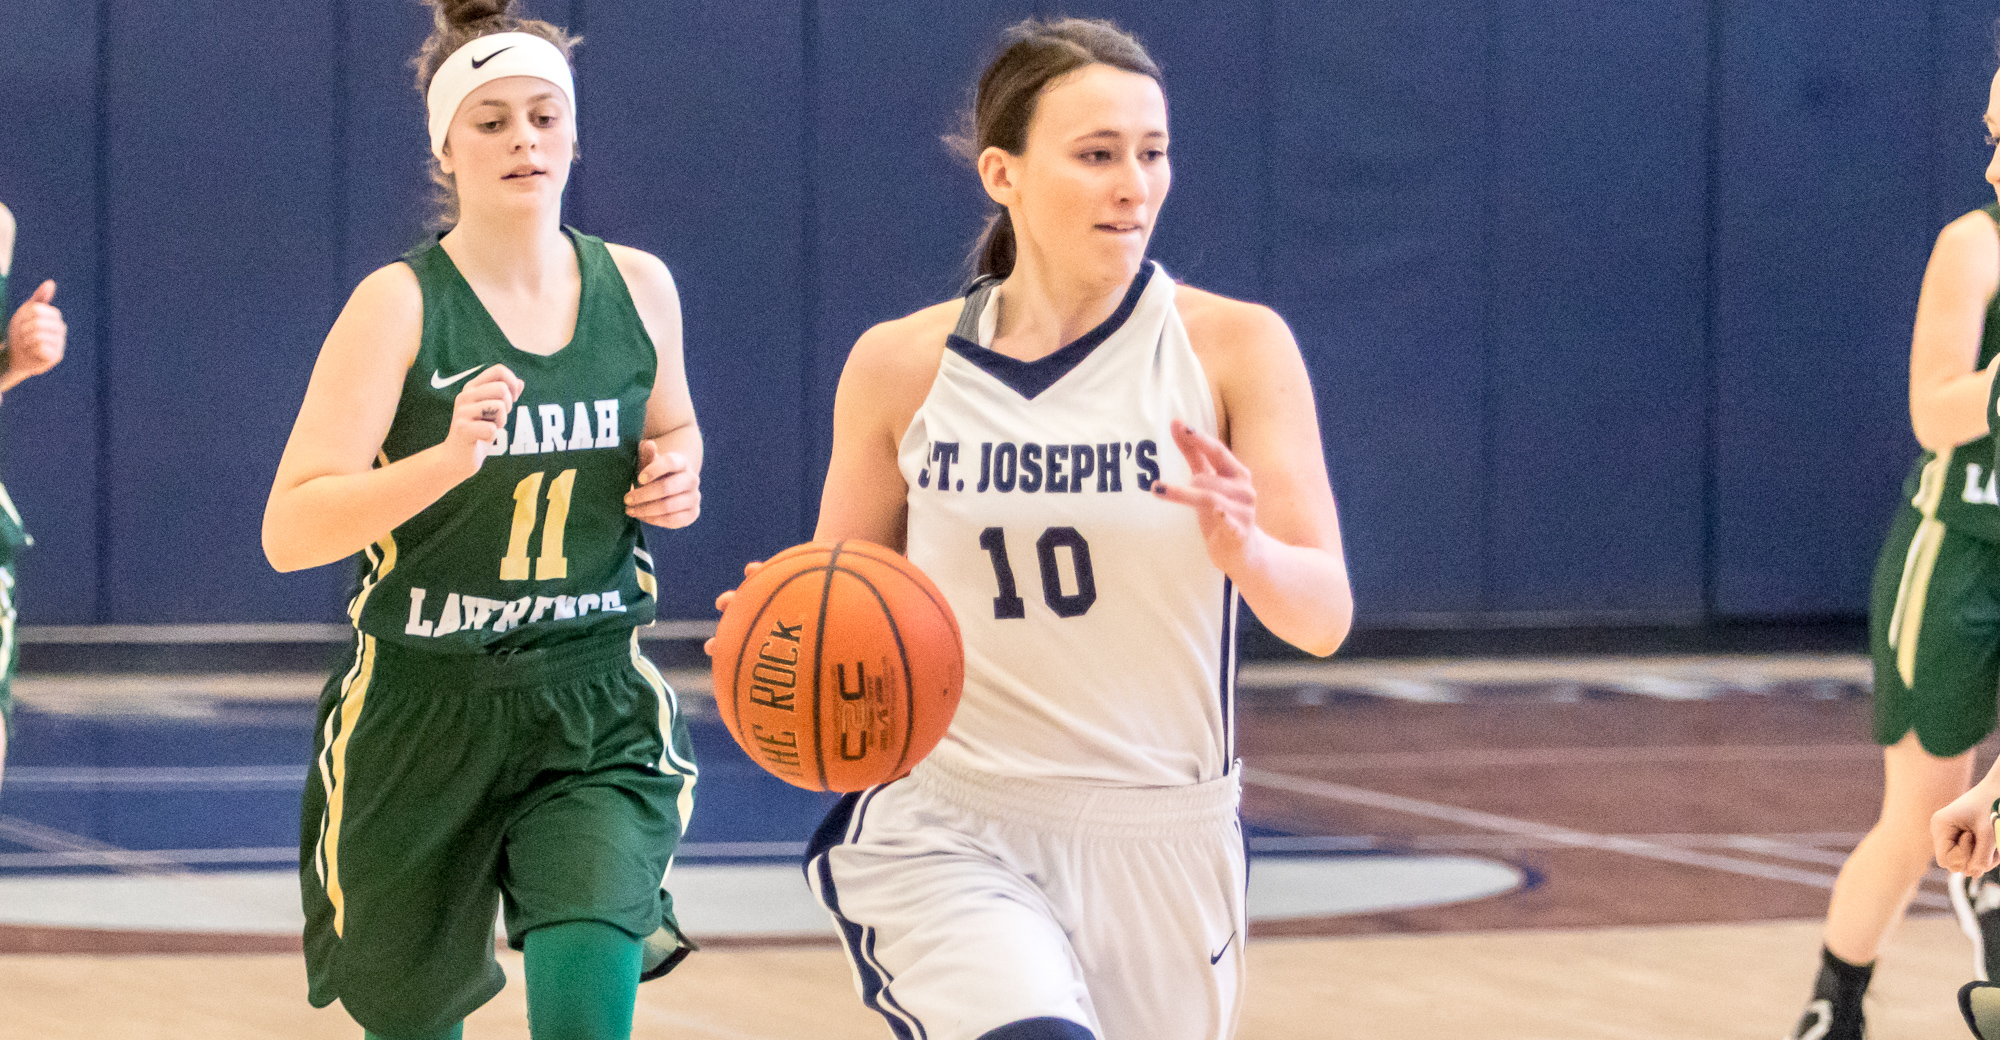 Porcasi's Record-Setting Performance Lifts Women's Basketball Over Sarah Lawrence